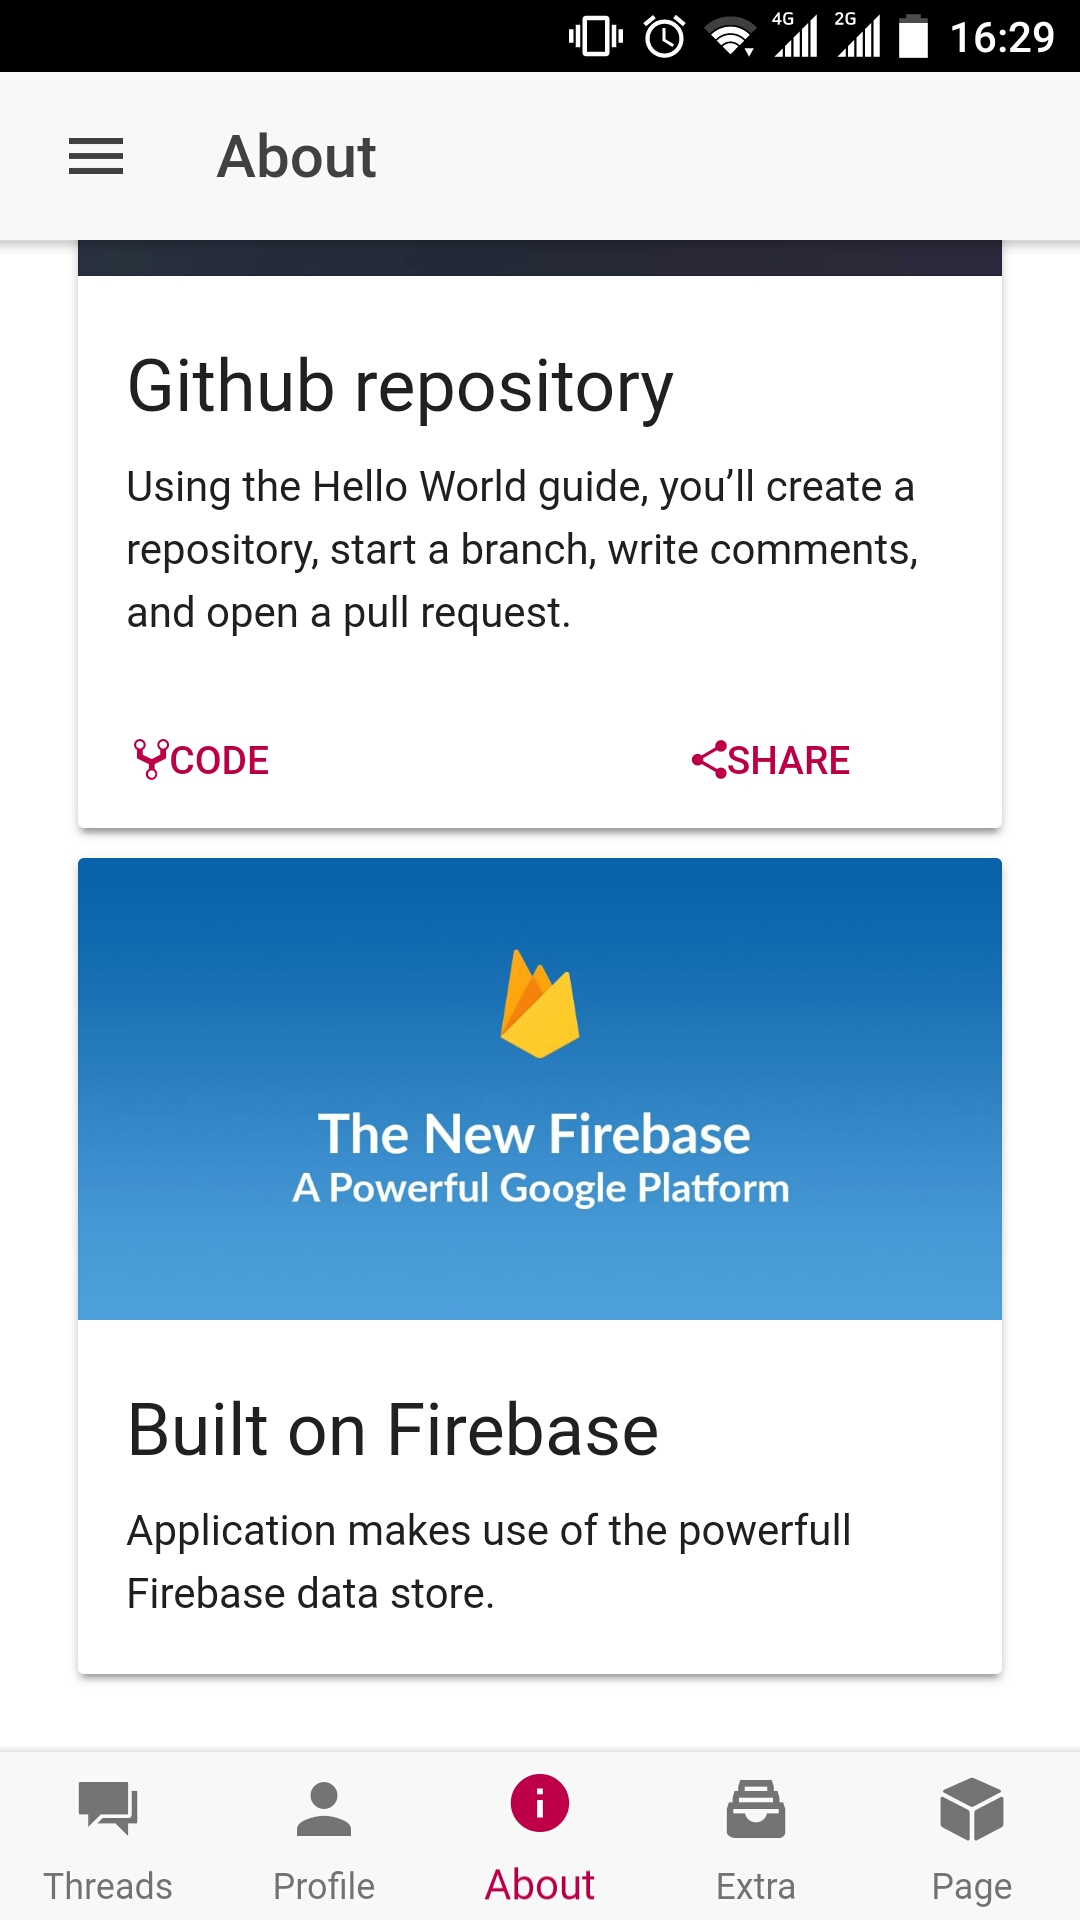 Fire-forum-ionic-3-firebase-4-forum-questions-answers-app